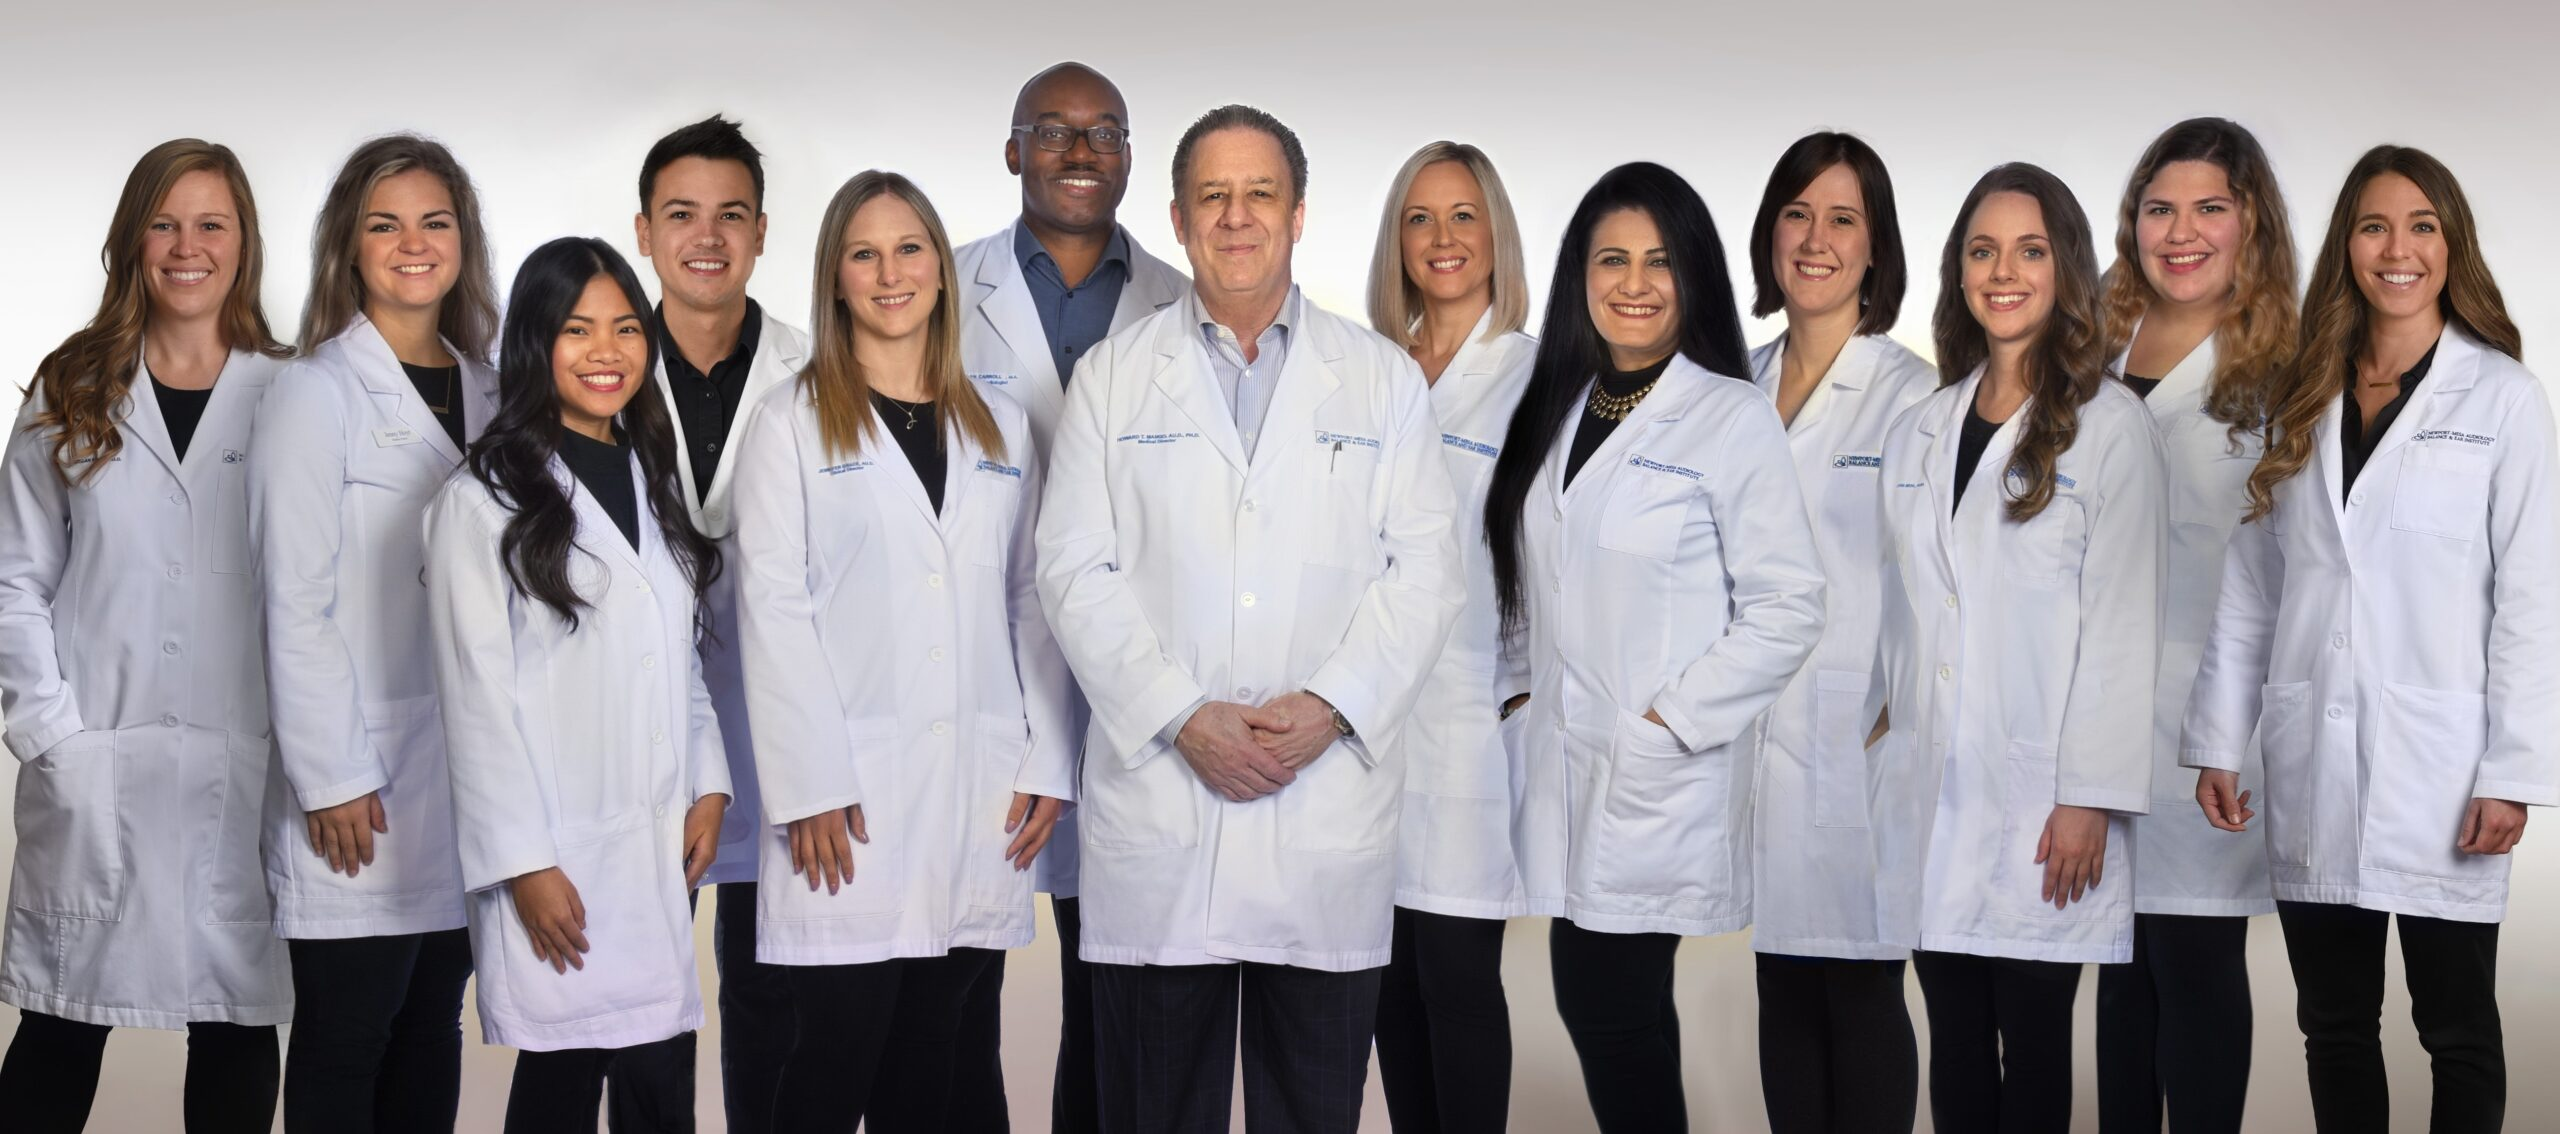 image of clinical staff at Newport-Mesa Audiology Balance & Ear Institute